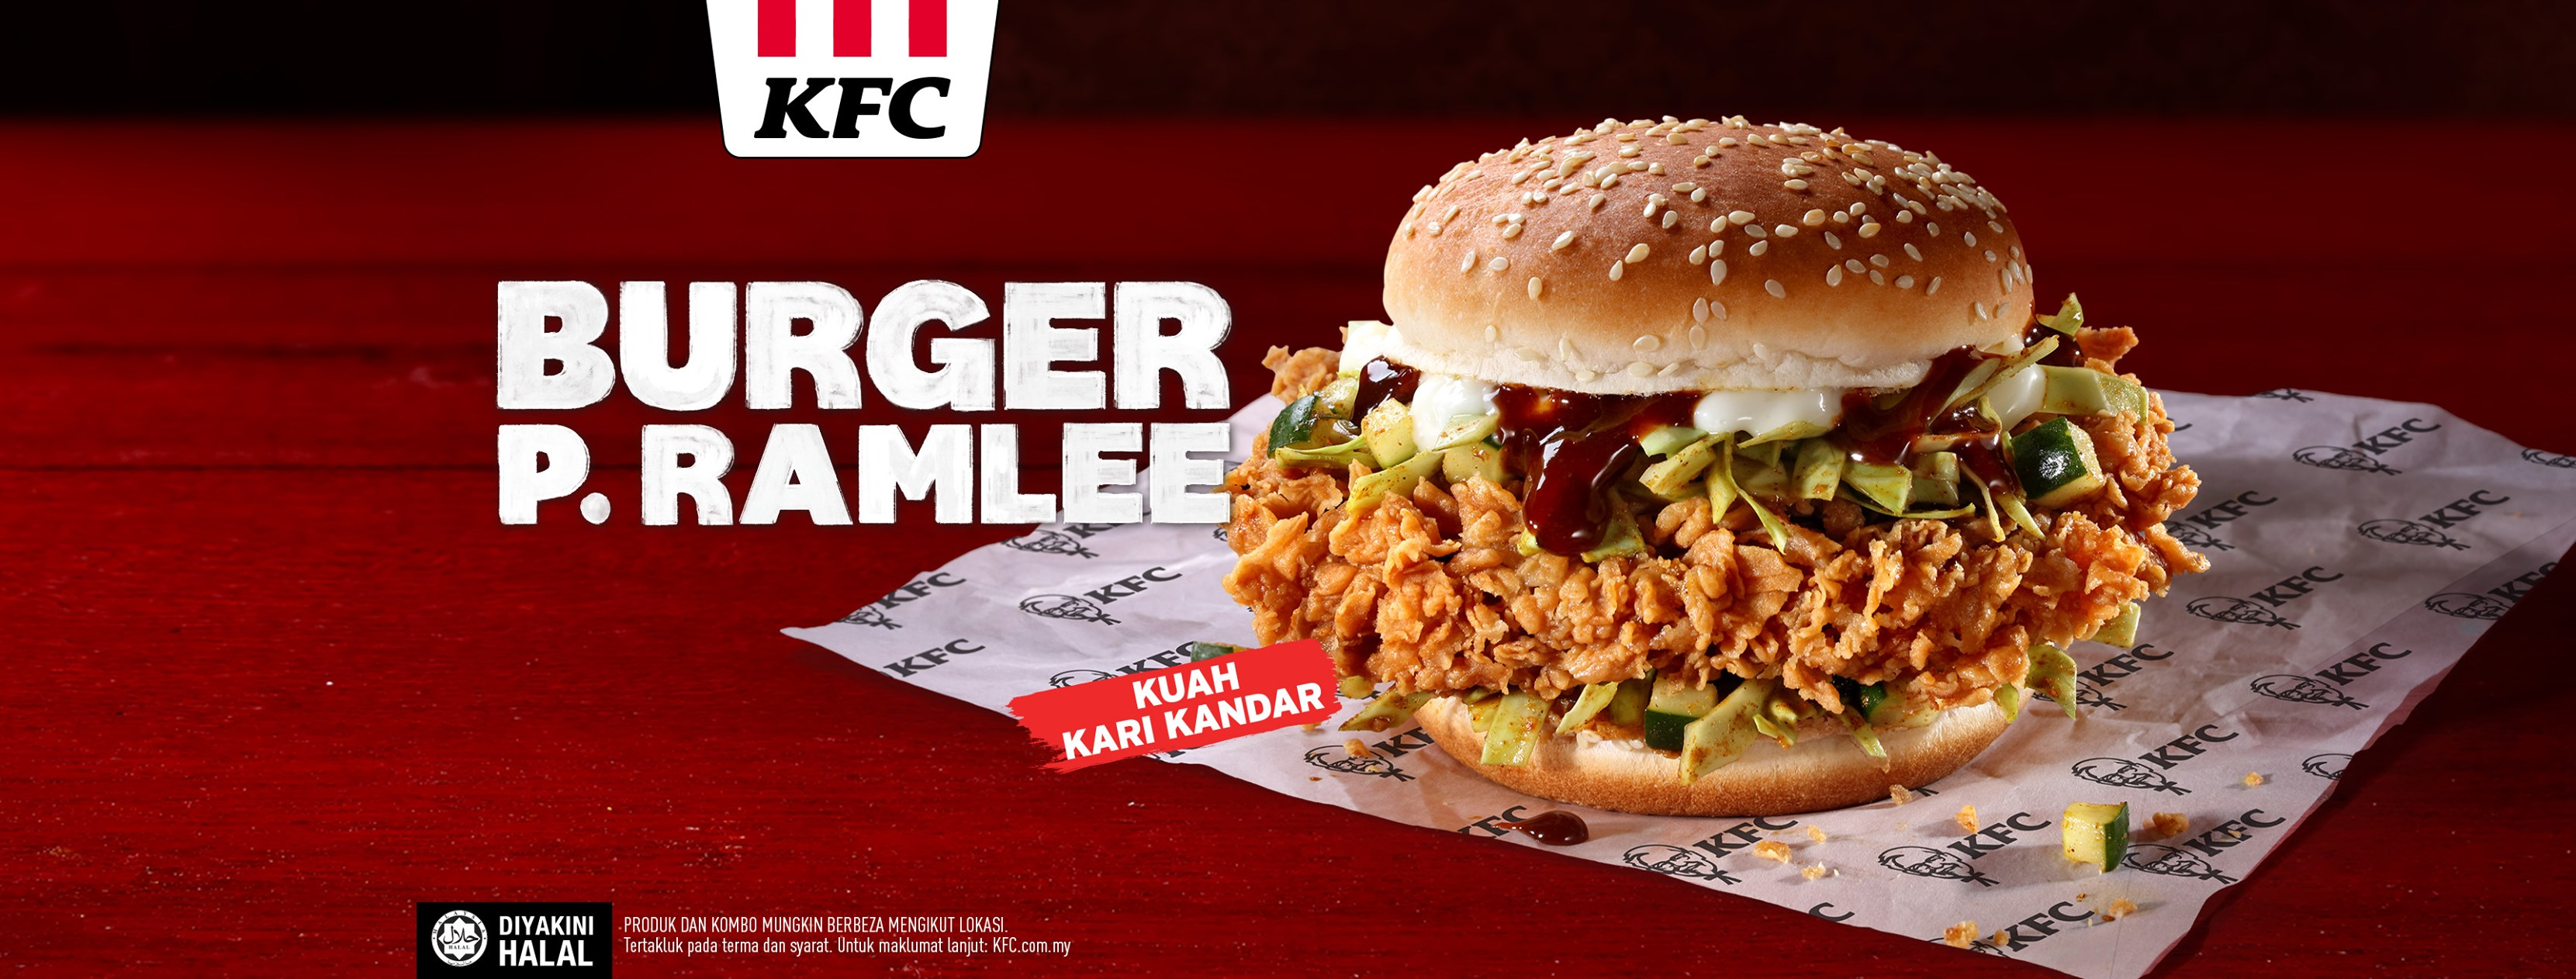 KFC Introduces Burger P.Ramlee As A Tribute To The Legend Himself